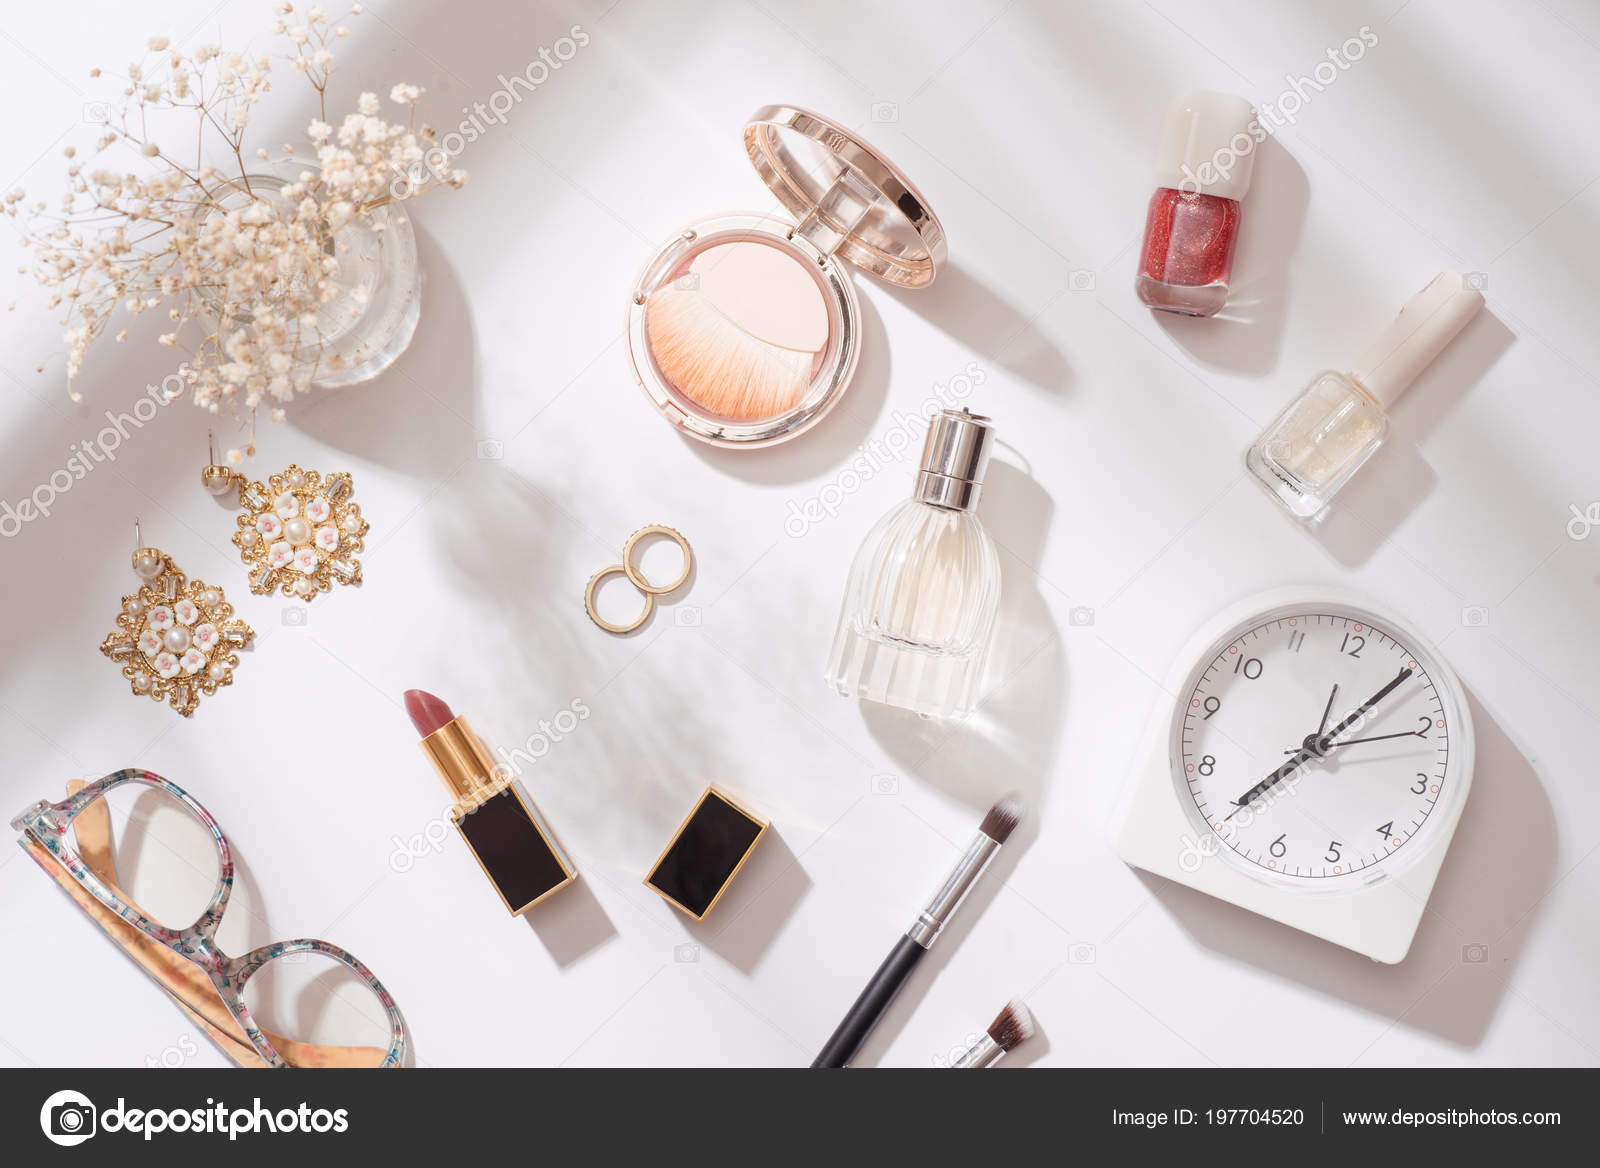 Creative Fashion Composition Stationery Objects Desk Flat Lay Accessories Table Stock Photo Image By C Makidotvn 197704520